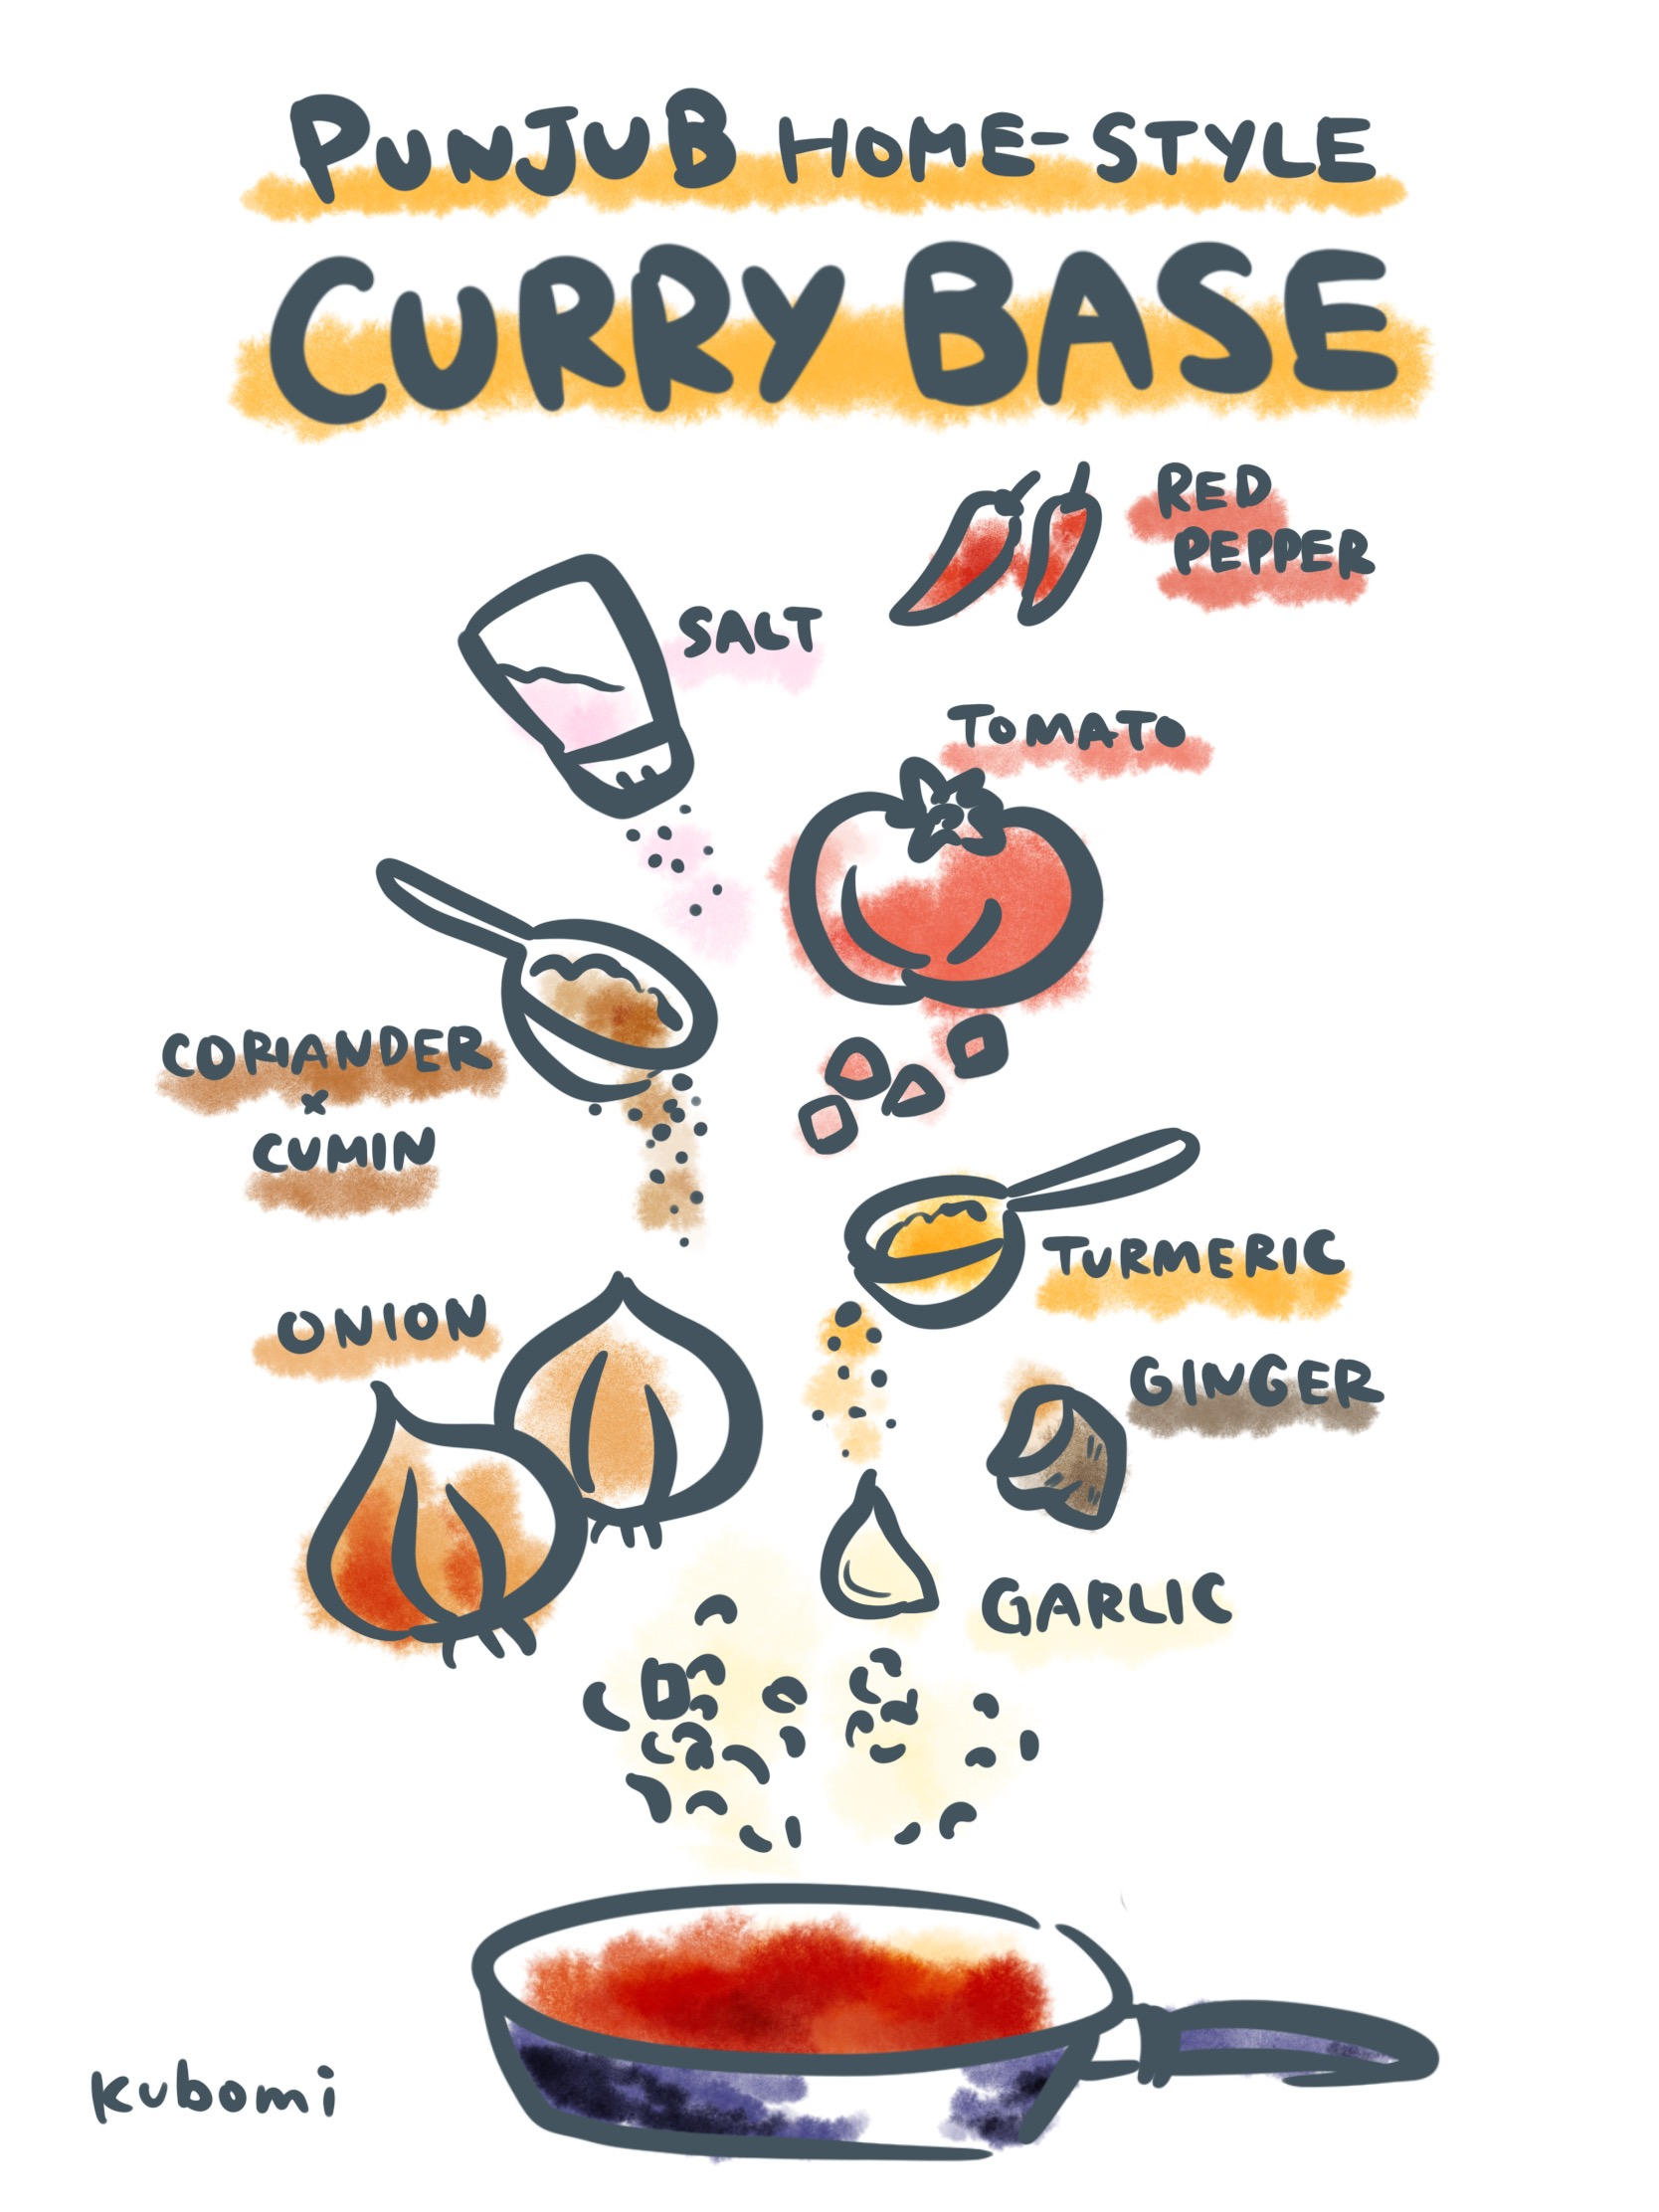 How to Make Indian Home-Style Curry Base